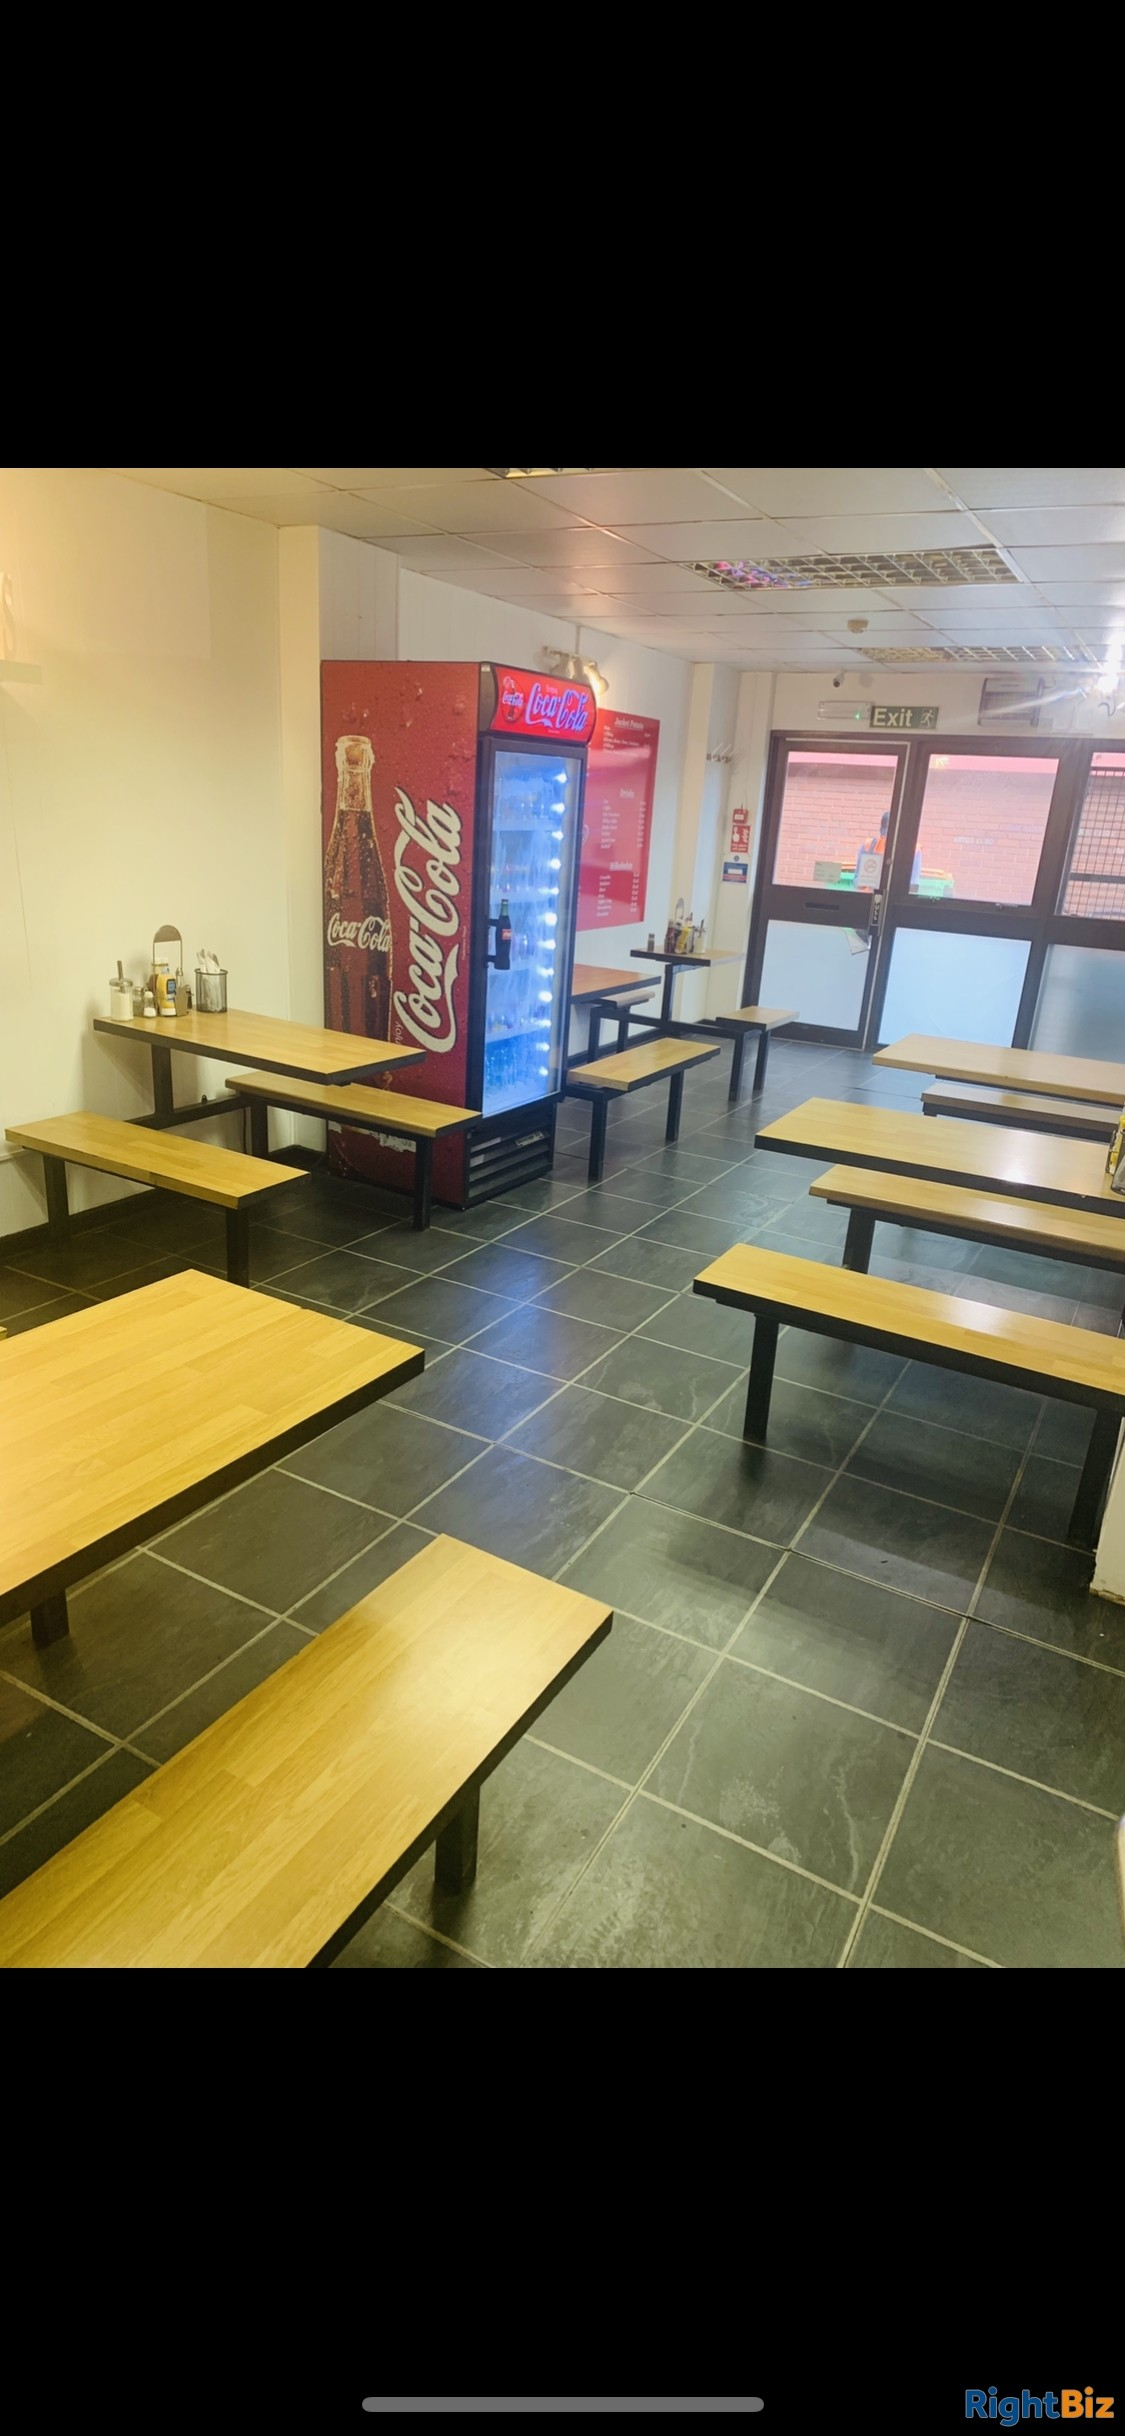 Cafe for sale - only place to eat on an industrial estate for 52 businesses - quick sale - Image 1